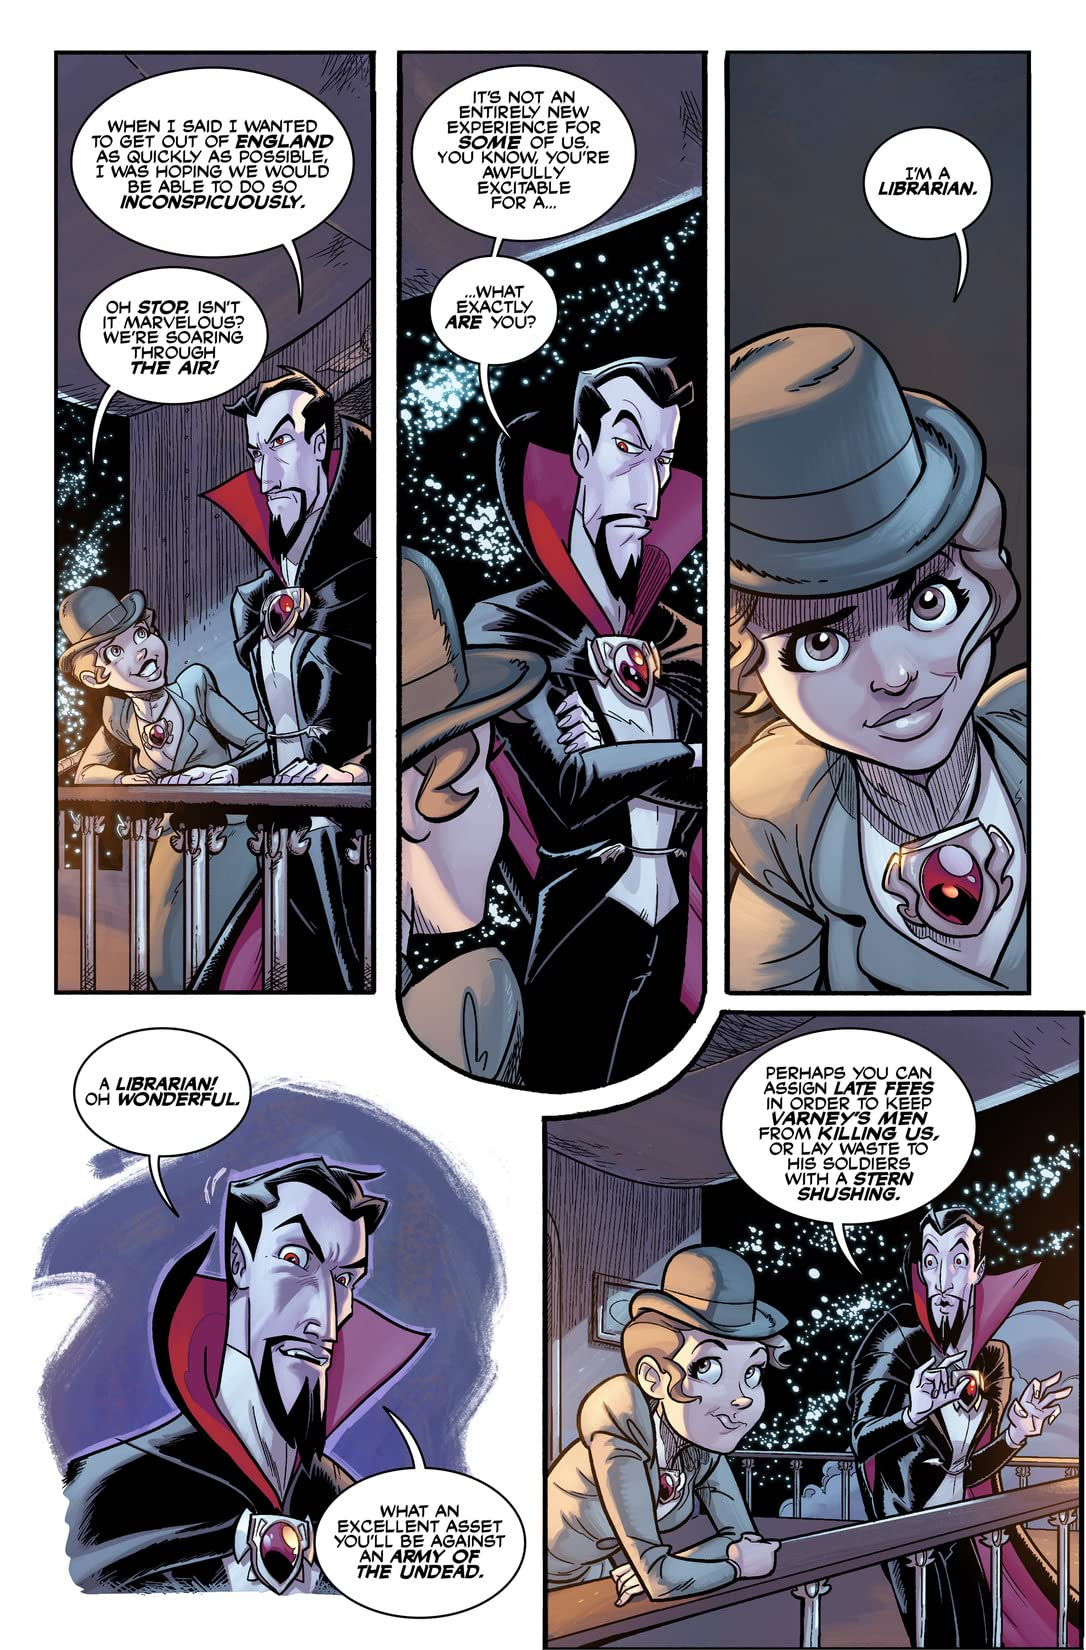 Dracula the Unconquered #3